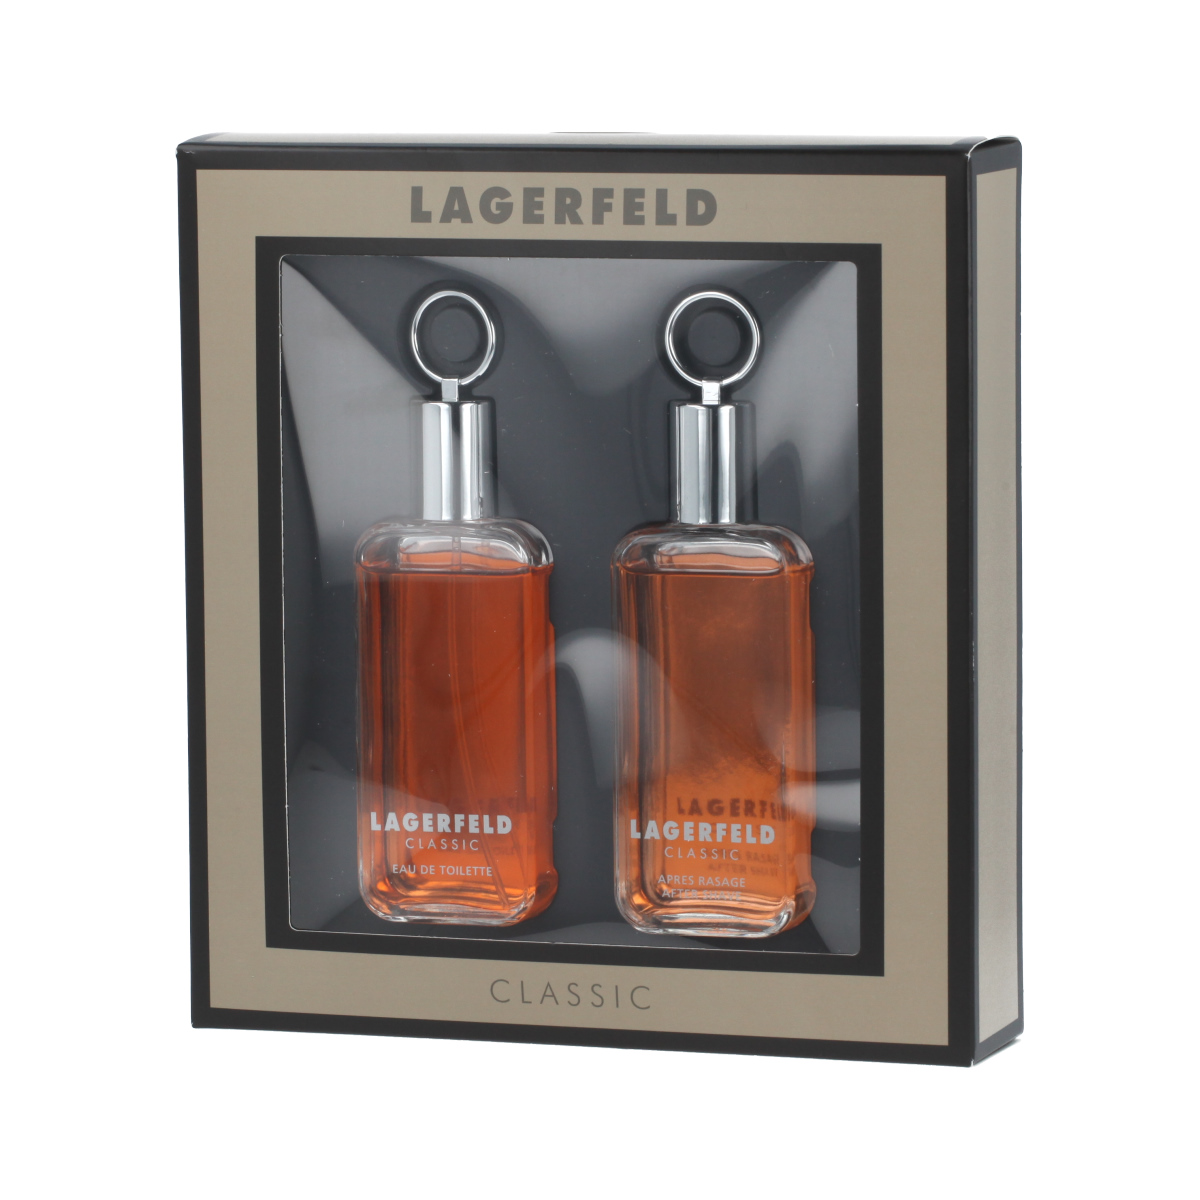 Karl Lagerfeld Lagerfeld Classic EDT 60 ml + AS 60 ml (man) 56274